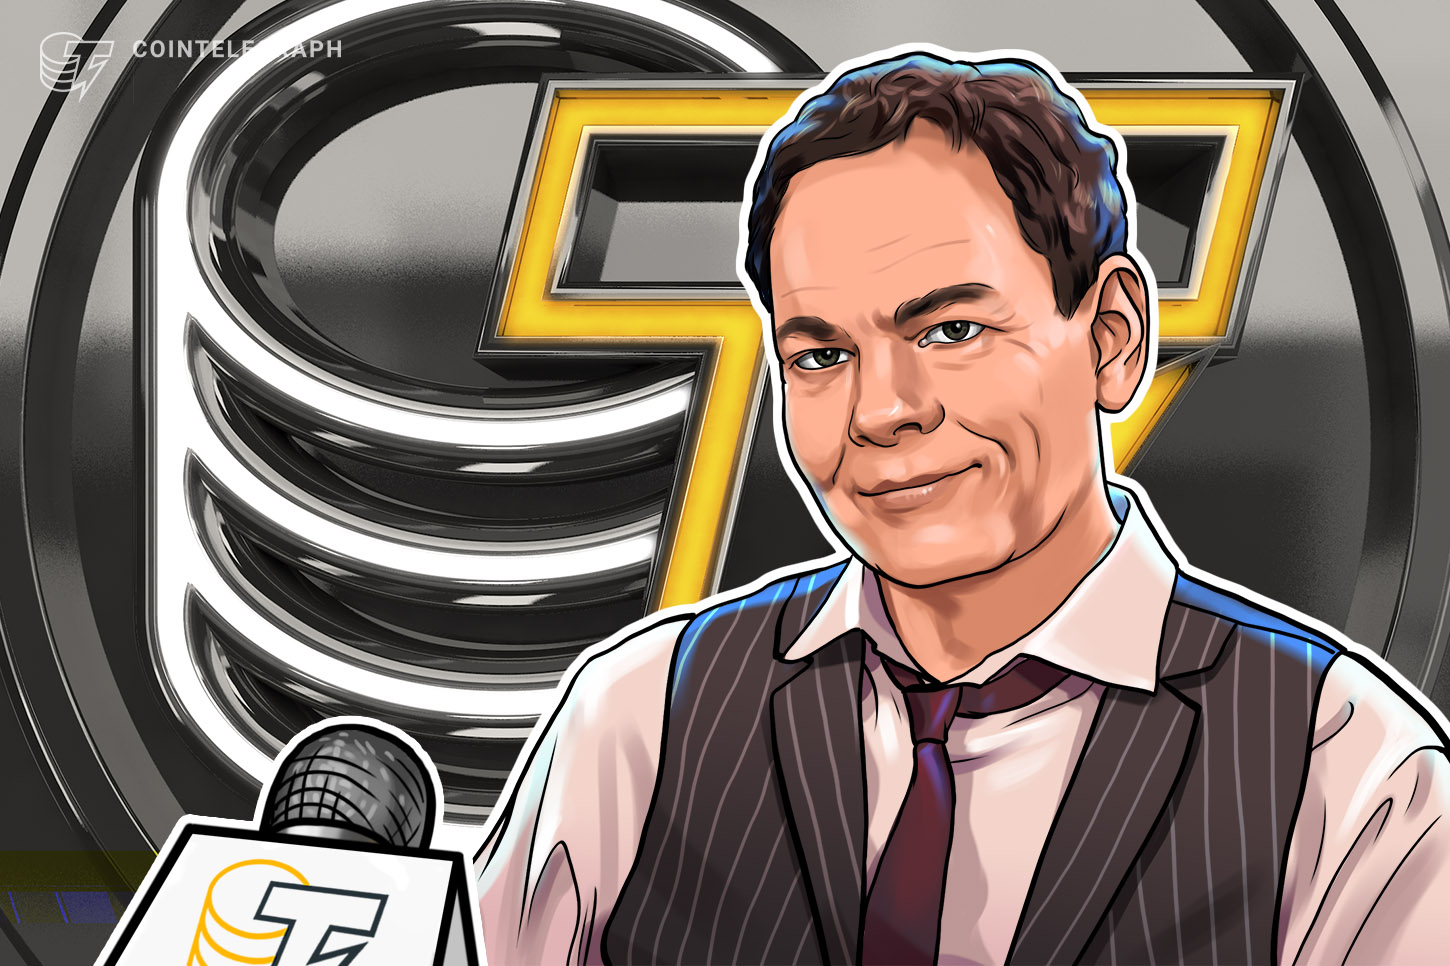 Bitcoin price will 'bolt higher' if Biden wins, rise slower with Trump — Max Keiser